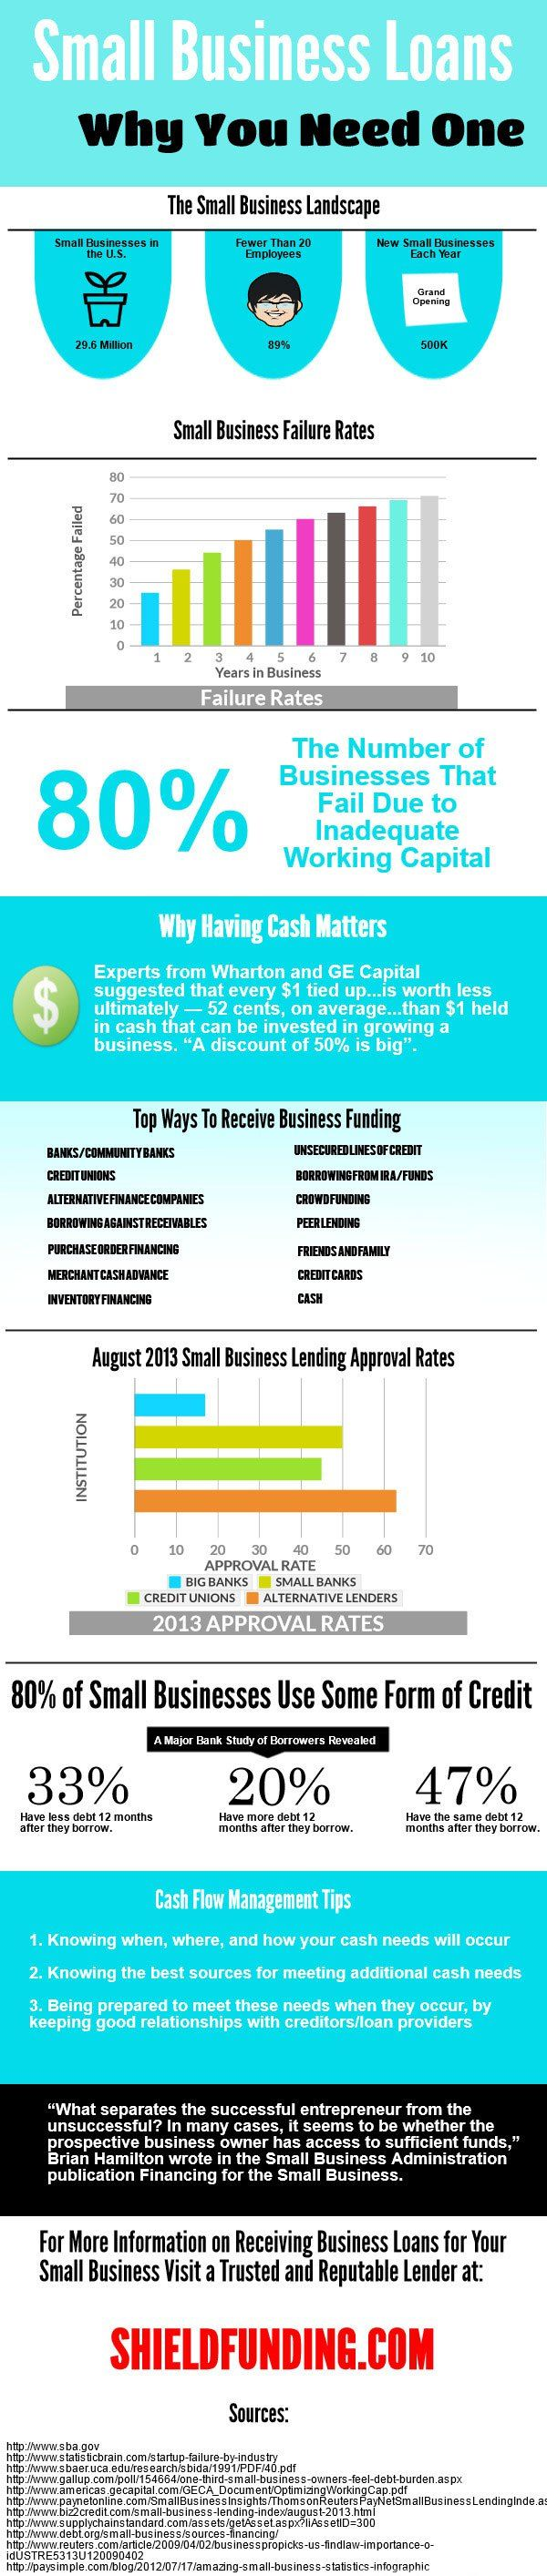 Small Business Loans Why You Need One Infographic Smallbusiness Loans Small Business Funding Small Business Loans Business Loans